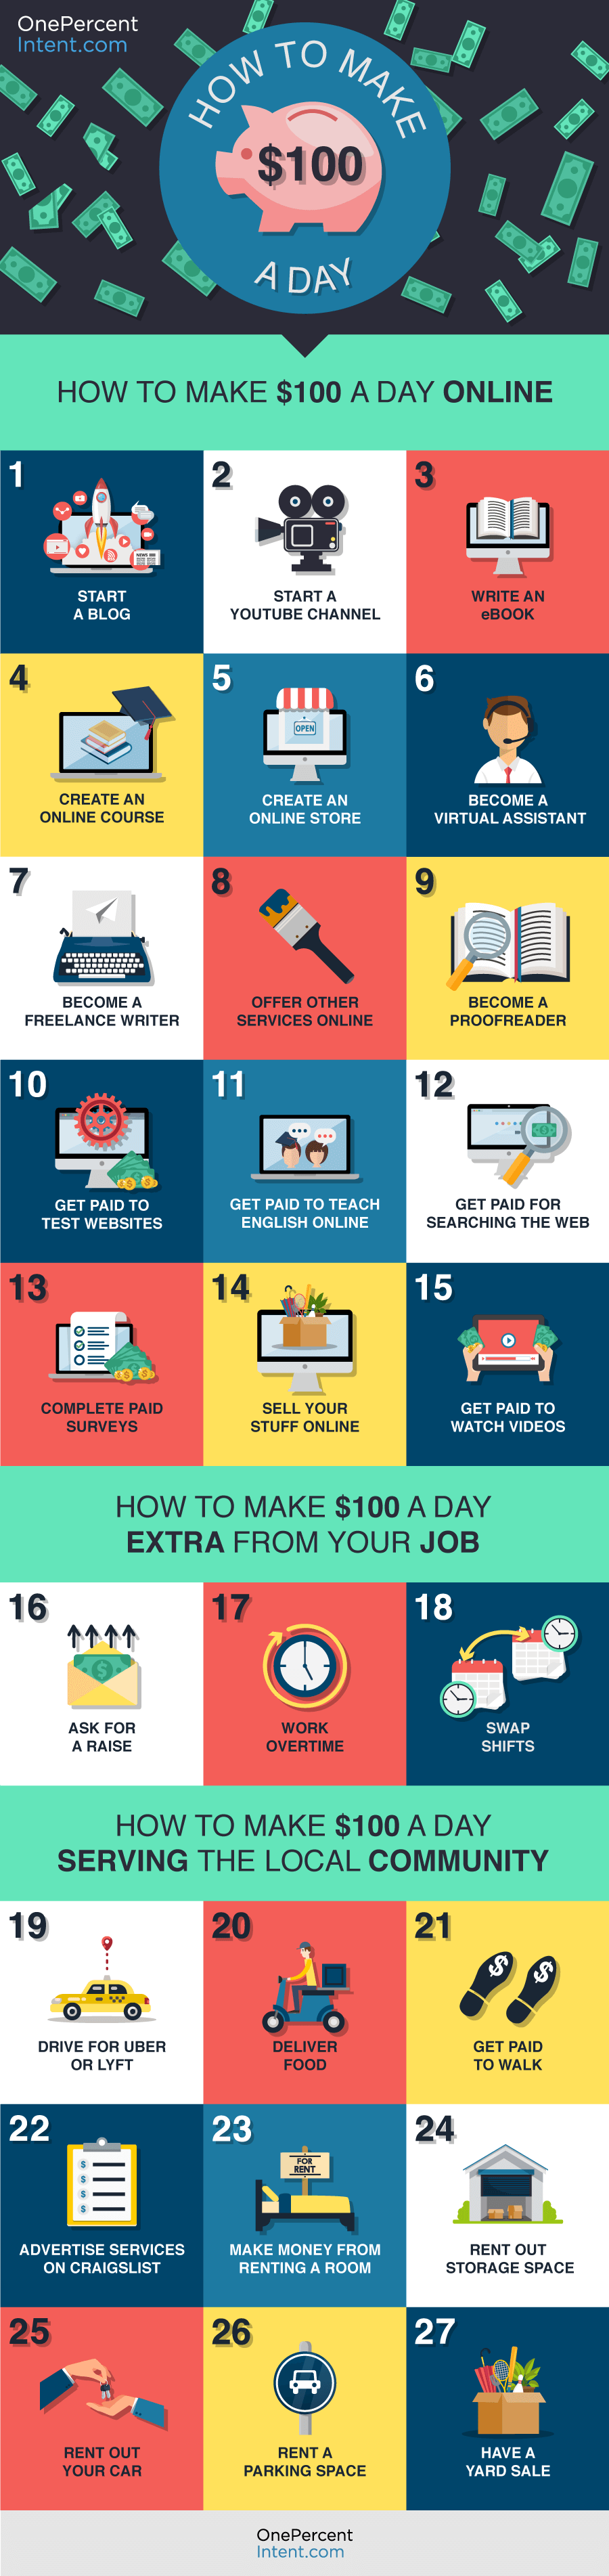 27 Different Ways to Make $100 a Day - Infographic